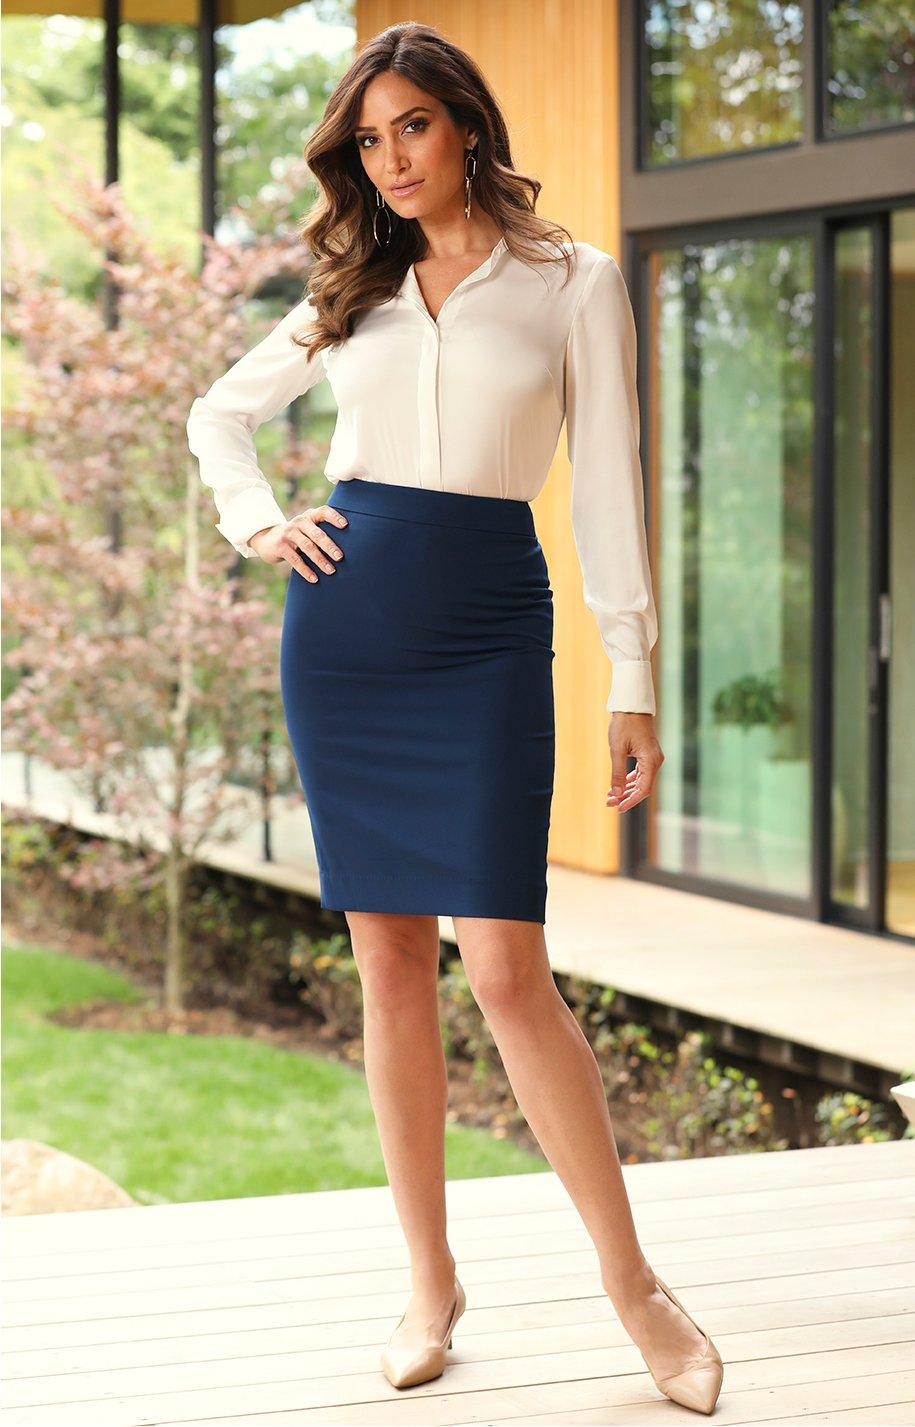 model wearing creme button up top tucked into navy pencil skirt